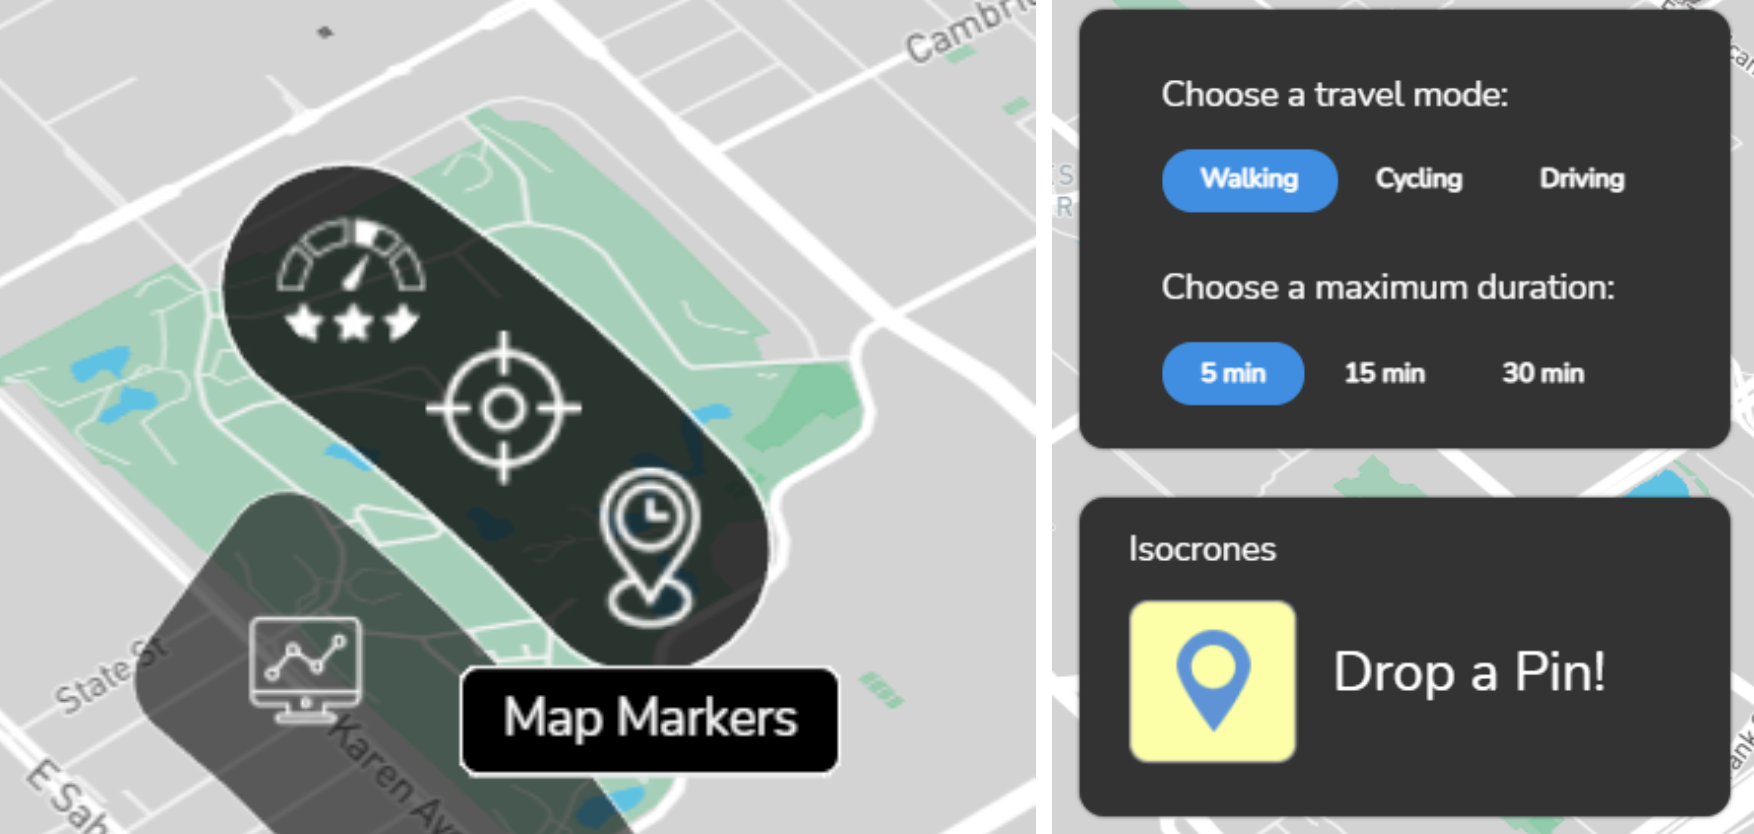 a. Use the 'Map Markers' button to open the 'Drop a Pin' tab